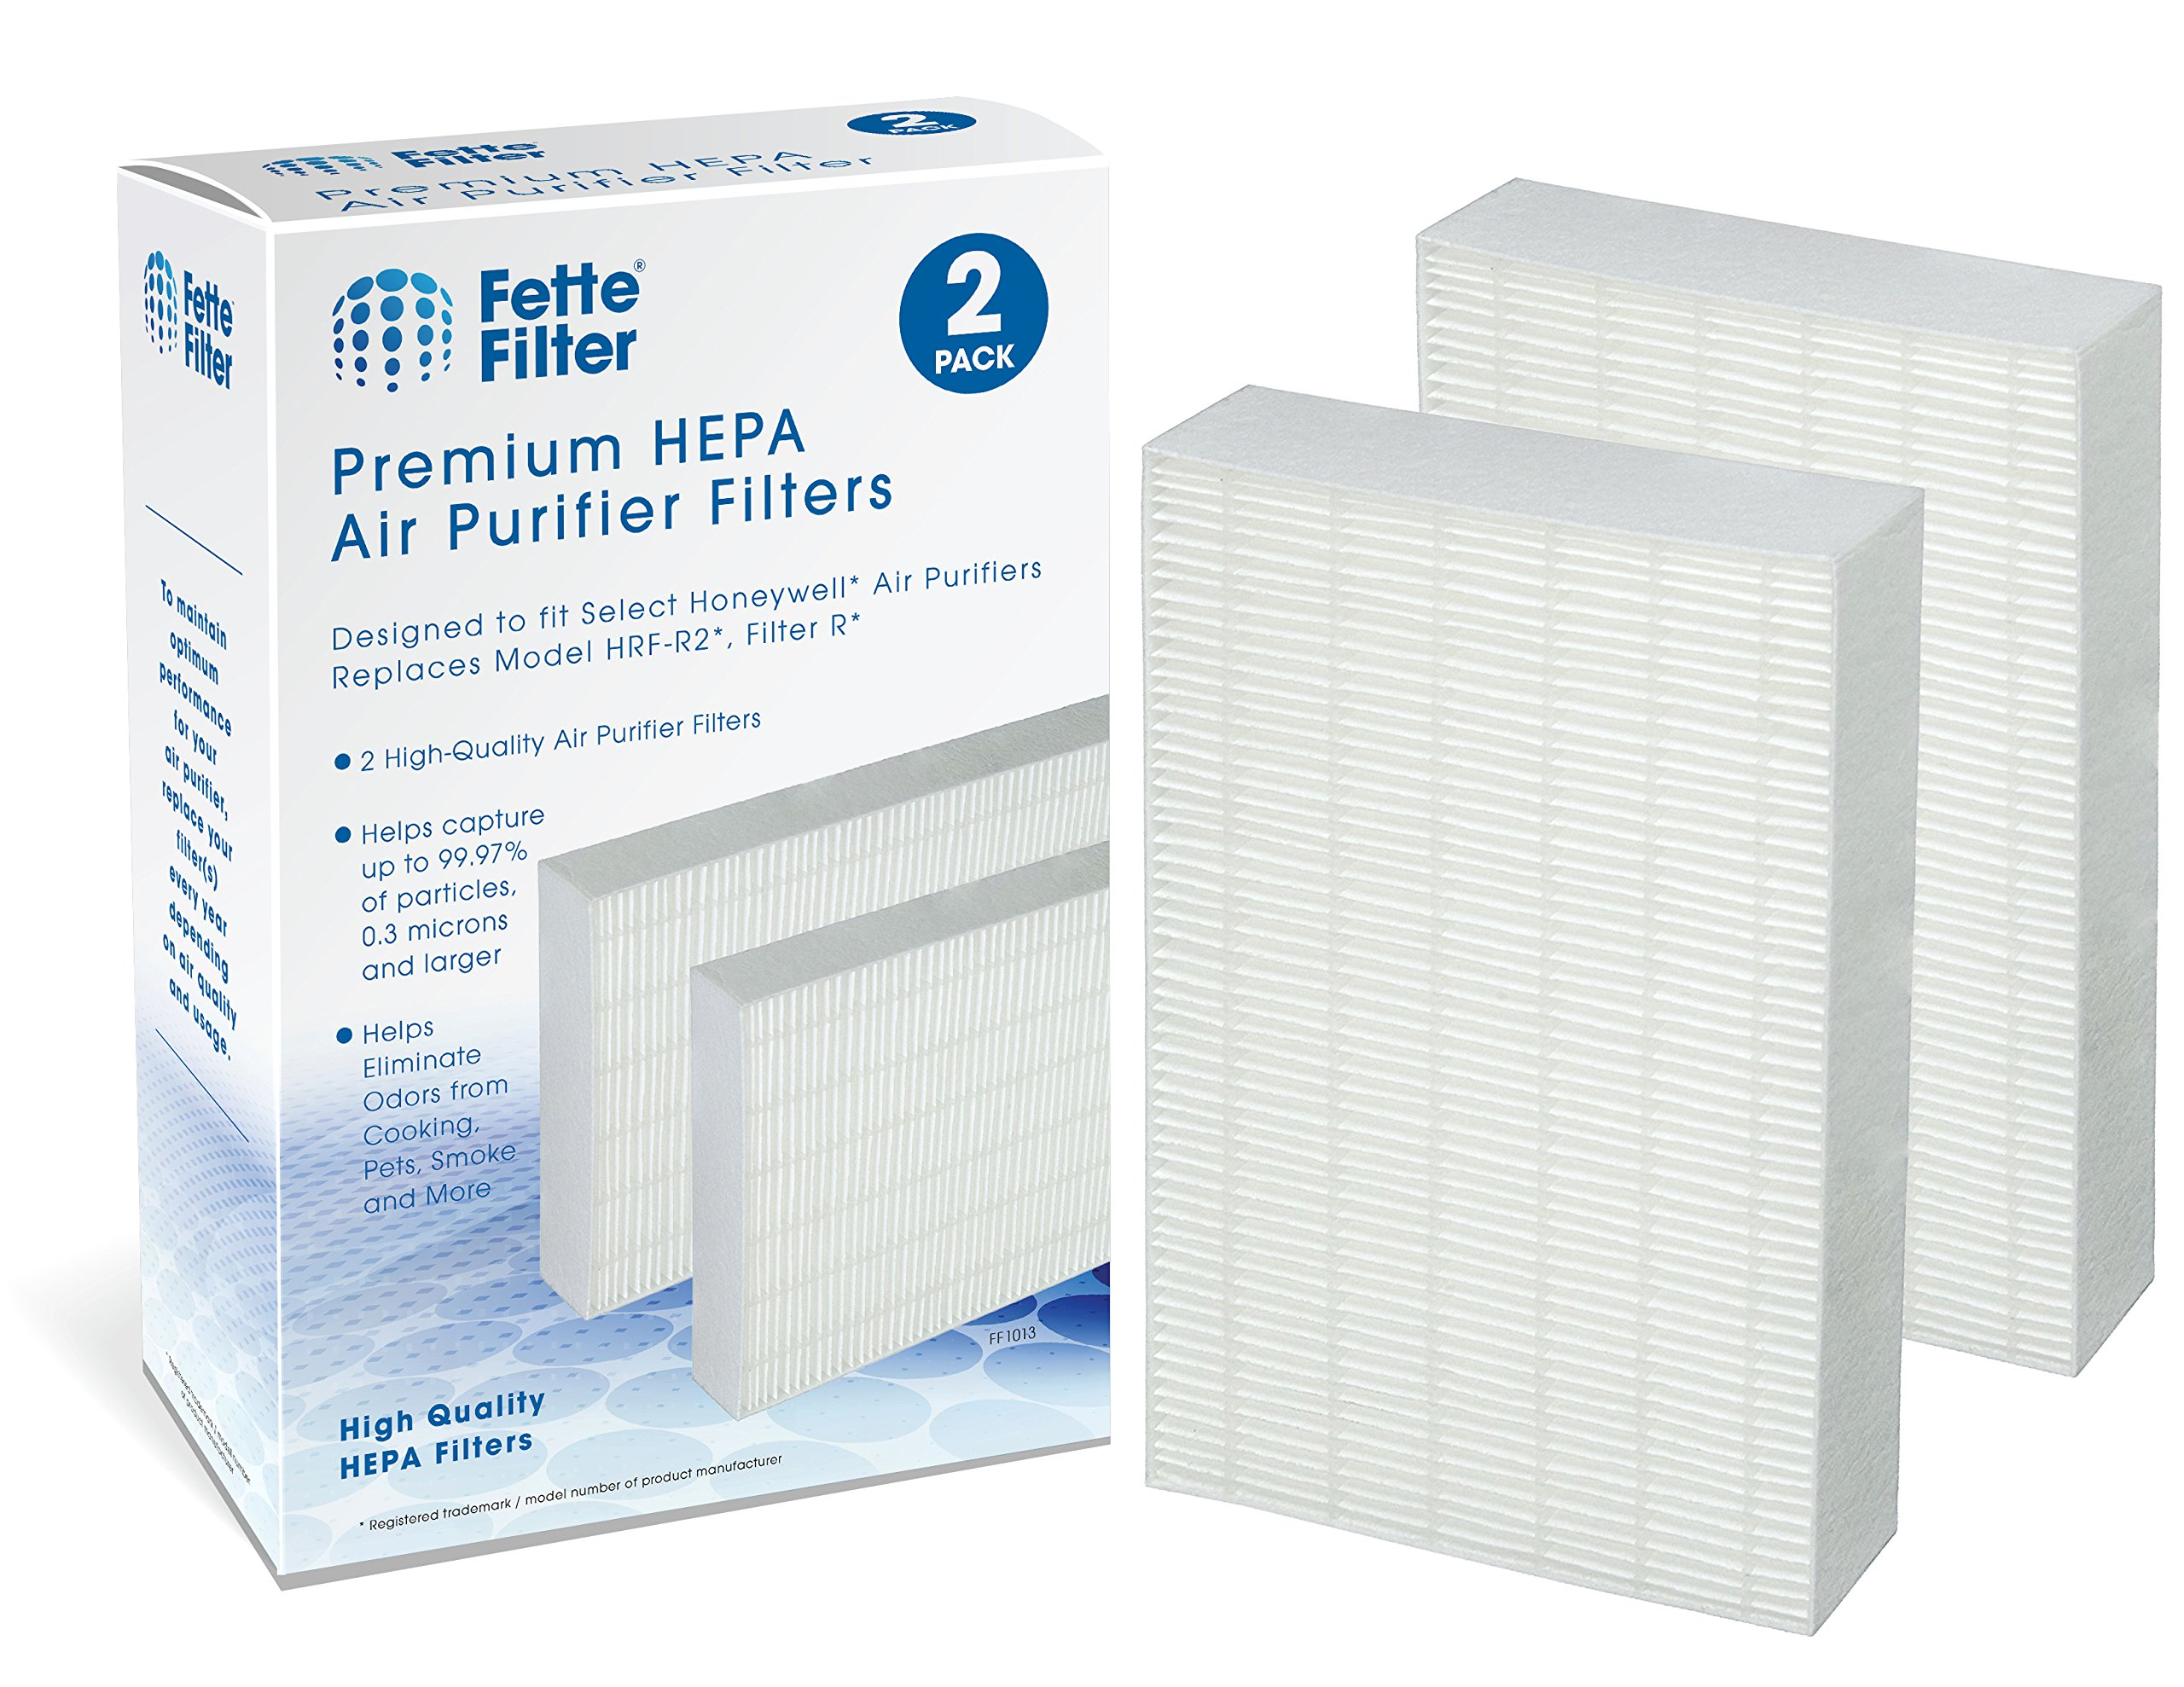 Fette Filter Air Purifier Filters. Compatible with HRF-R2, HRF-R3, Filter R (HRF-R2, 2-Pack)